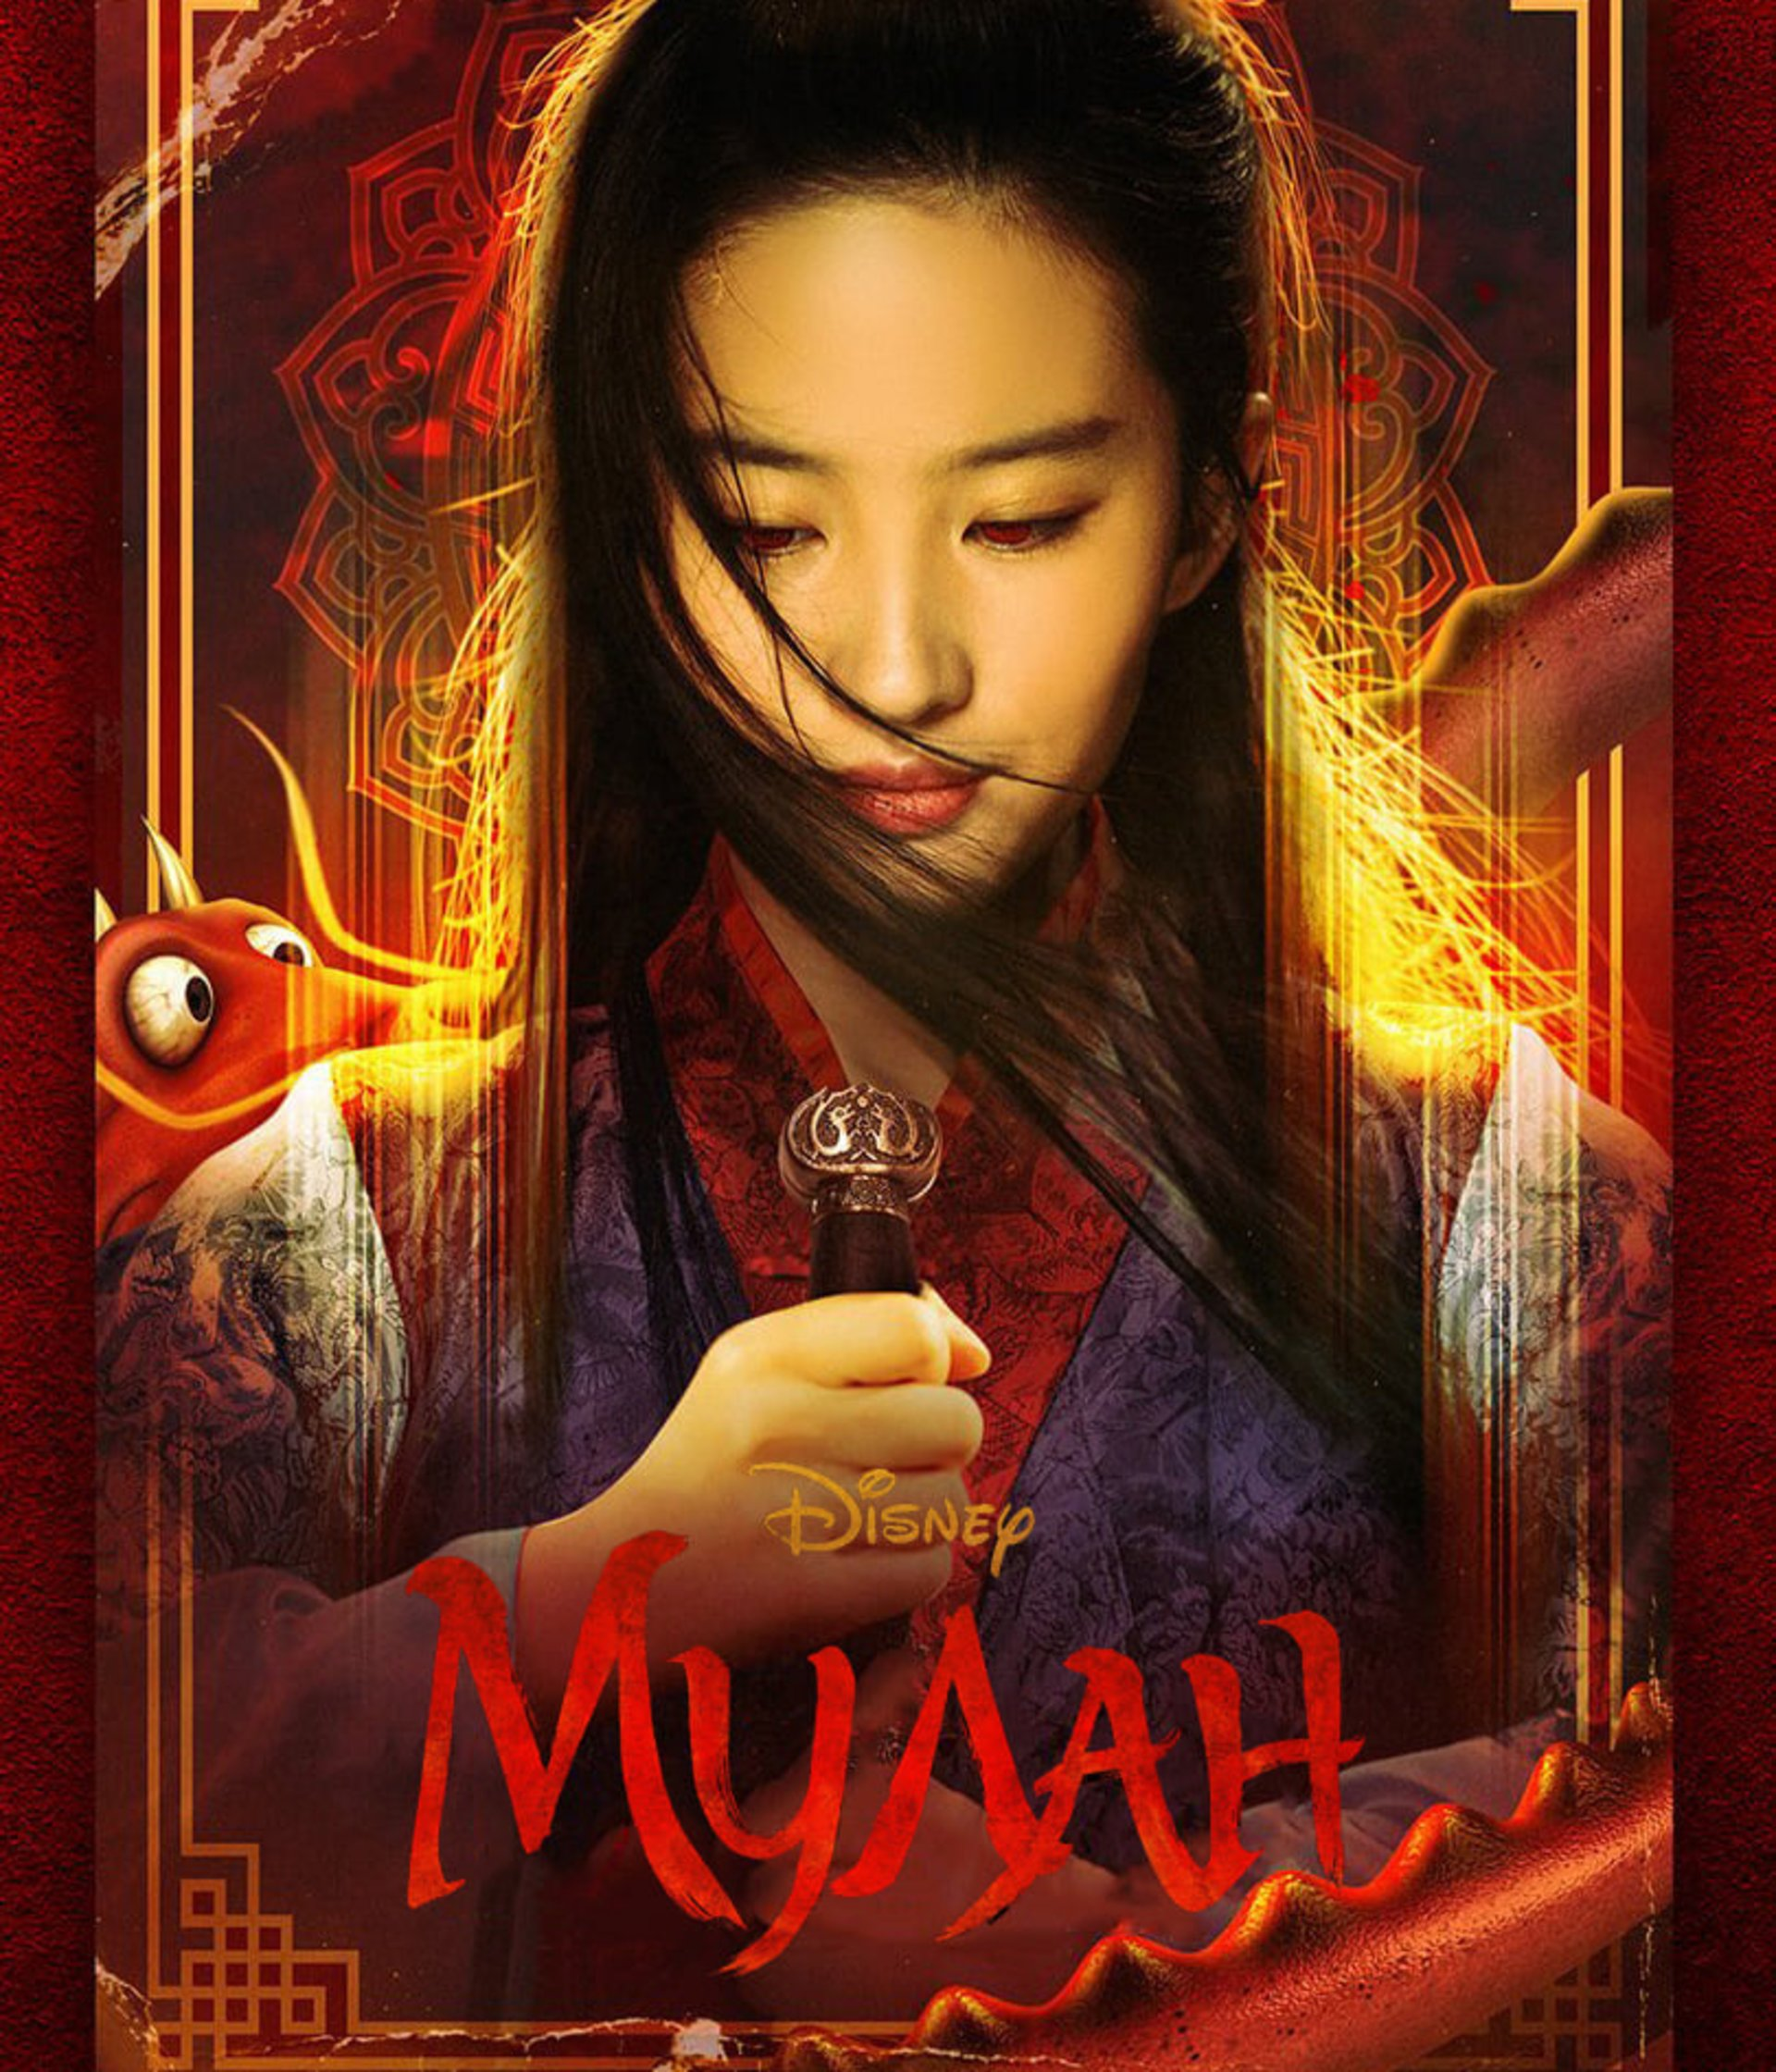 Film Mulan 2020 Lk21 Popular Layarkaca21